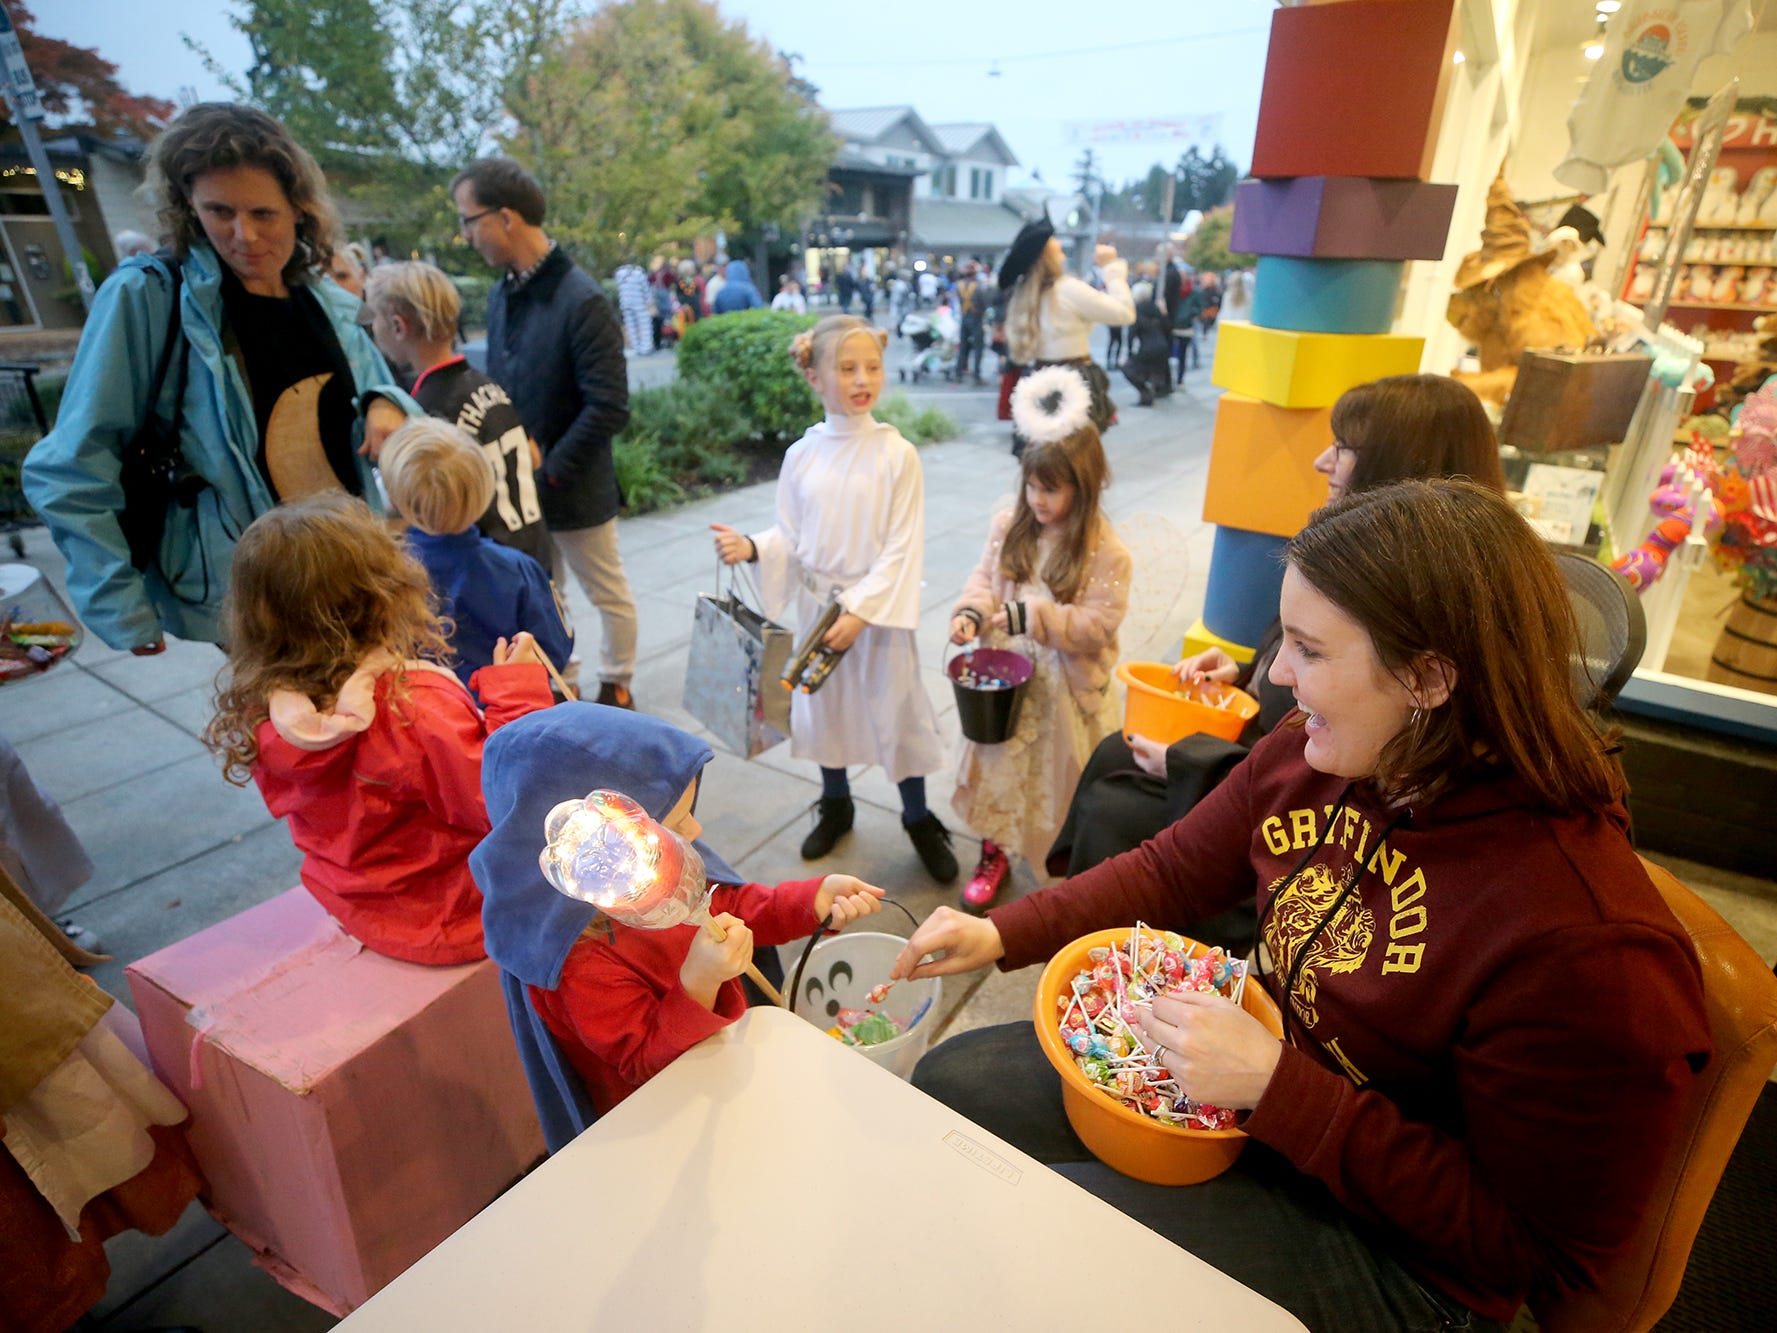 Lauren Trujillo, right, hands out candy in front of the Calico Toy Shoppe at the Bainbridge Island Halloween Walk on October, 31, 2018.